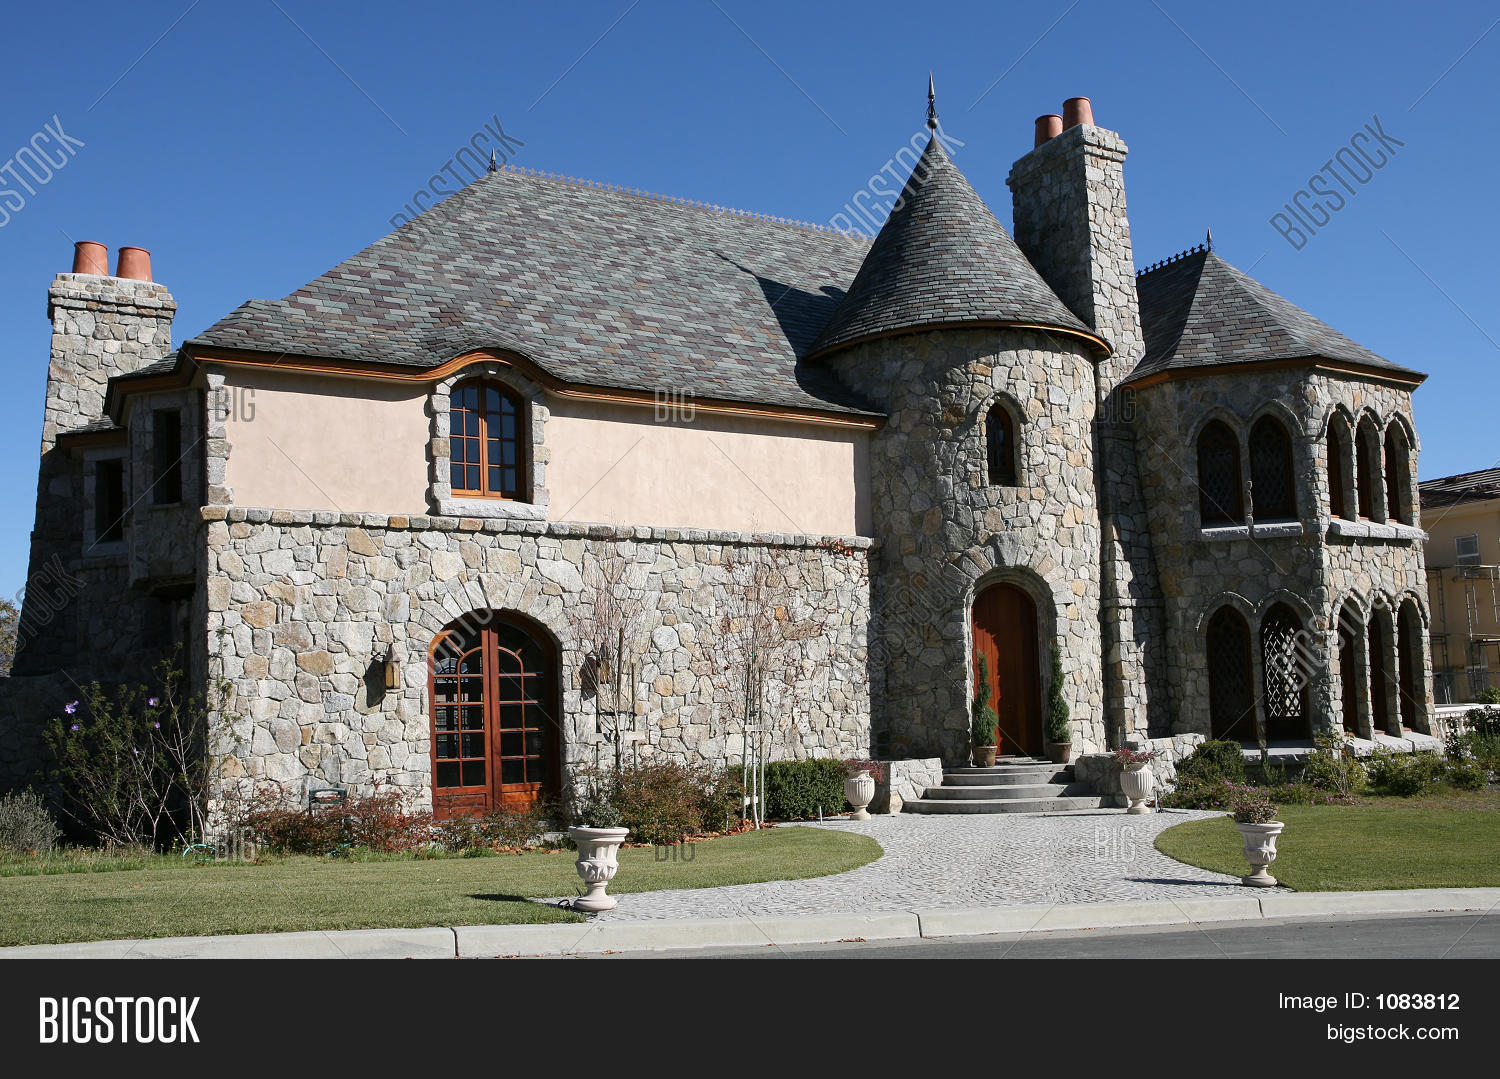 Castle style home image photo bigstock for Castle style homes